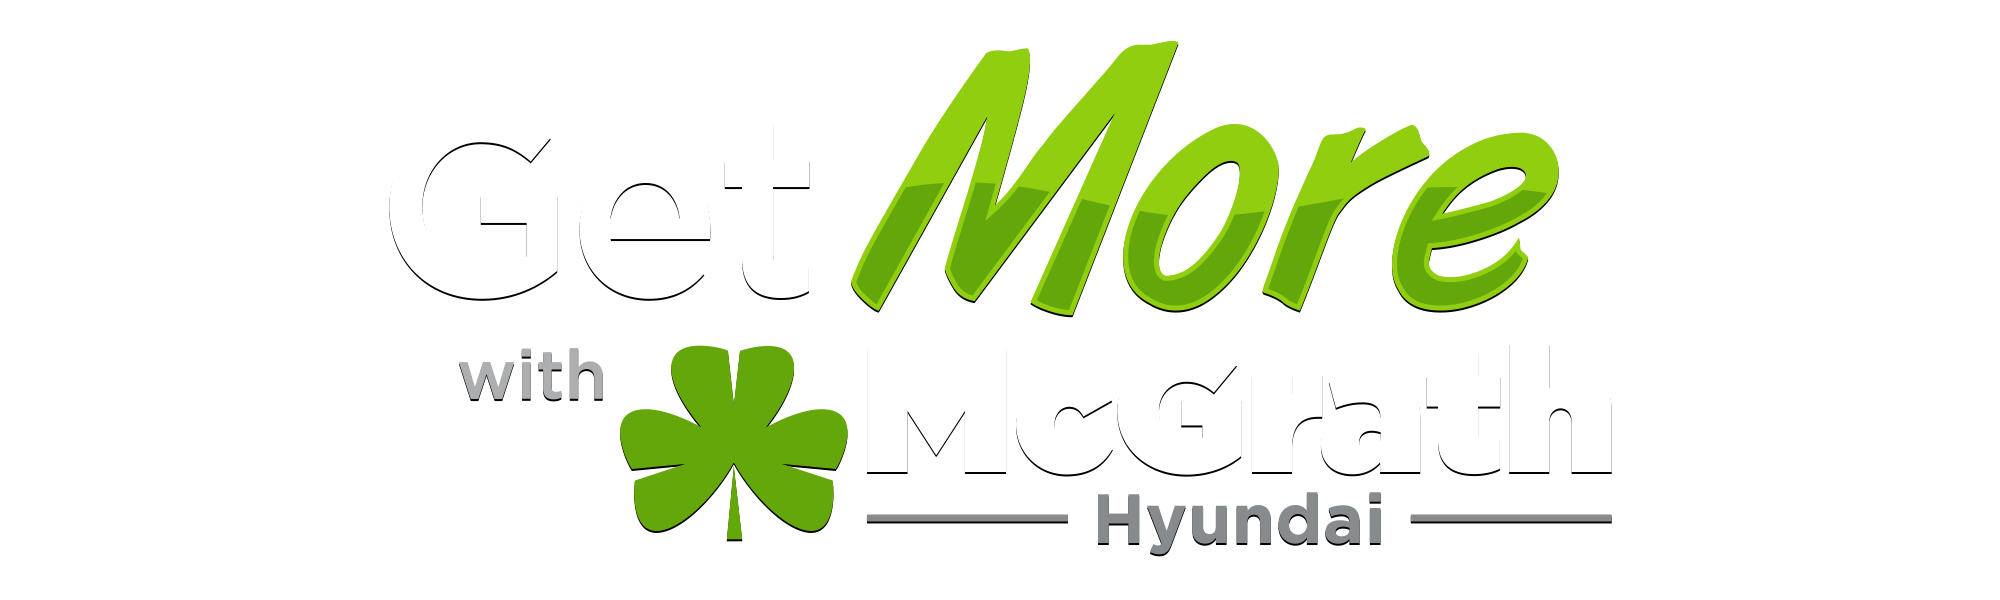 Used Cars Dubuque >> Mcgrath Hyundai Of Dubuque New Used Car Dealer In Dubuque Ia 52002